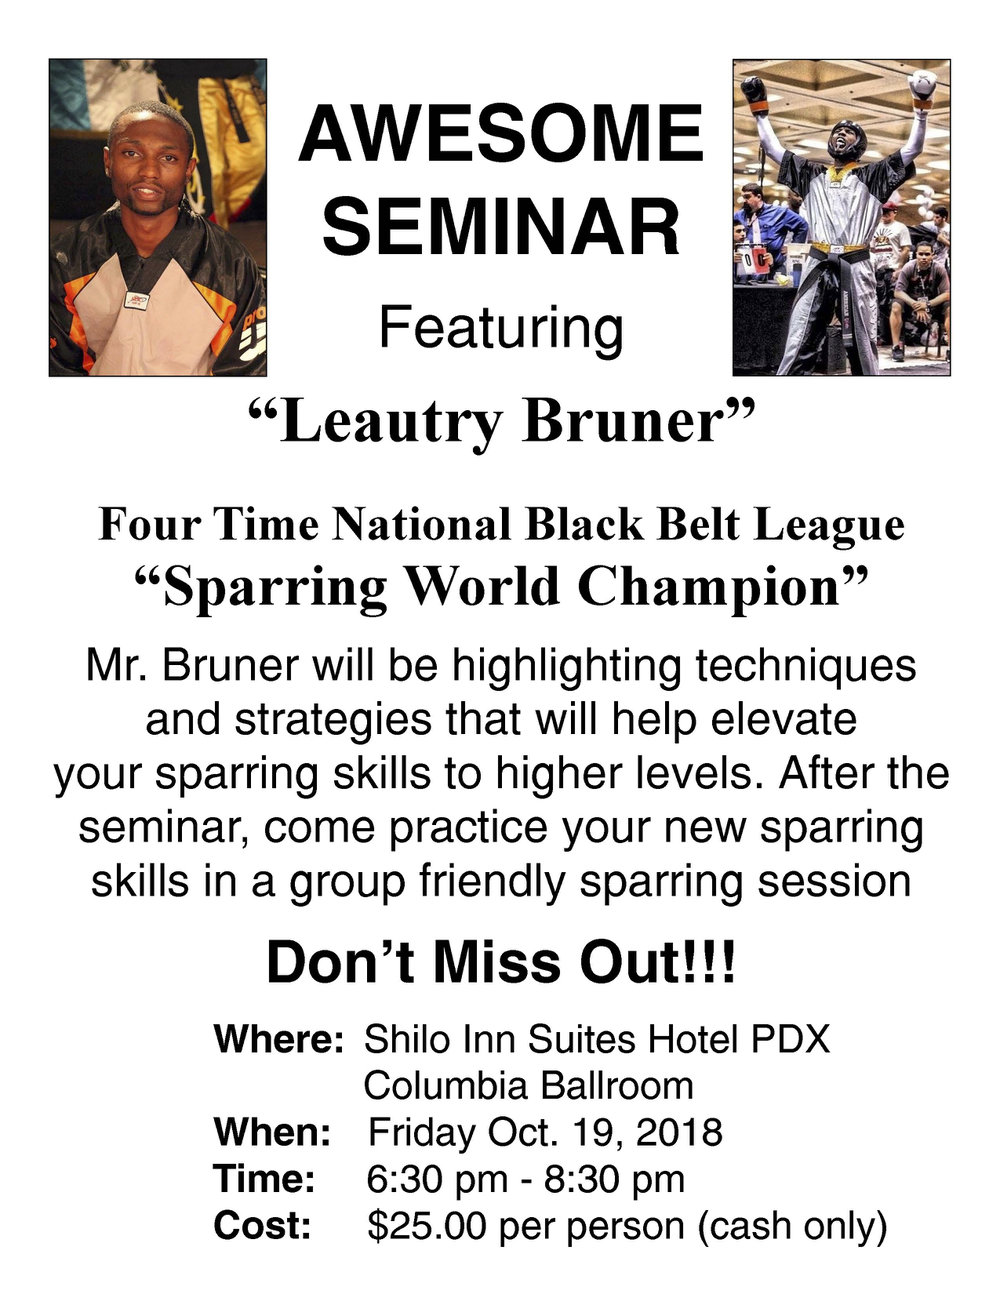 Awesome Seminar Flyer - 8-2018.jpg